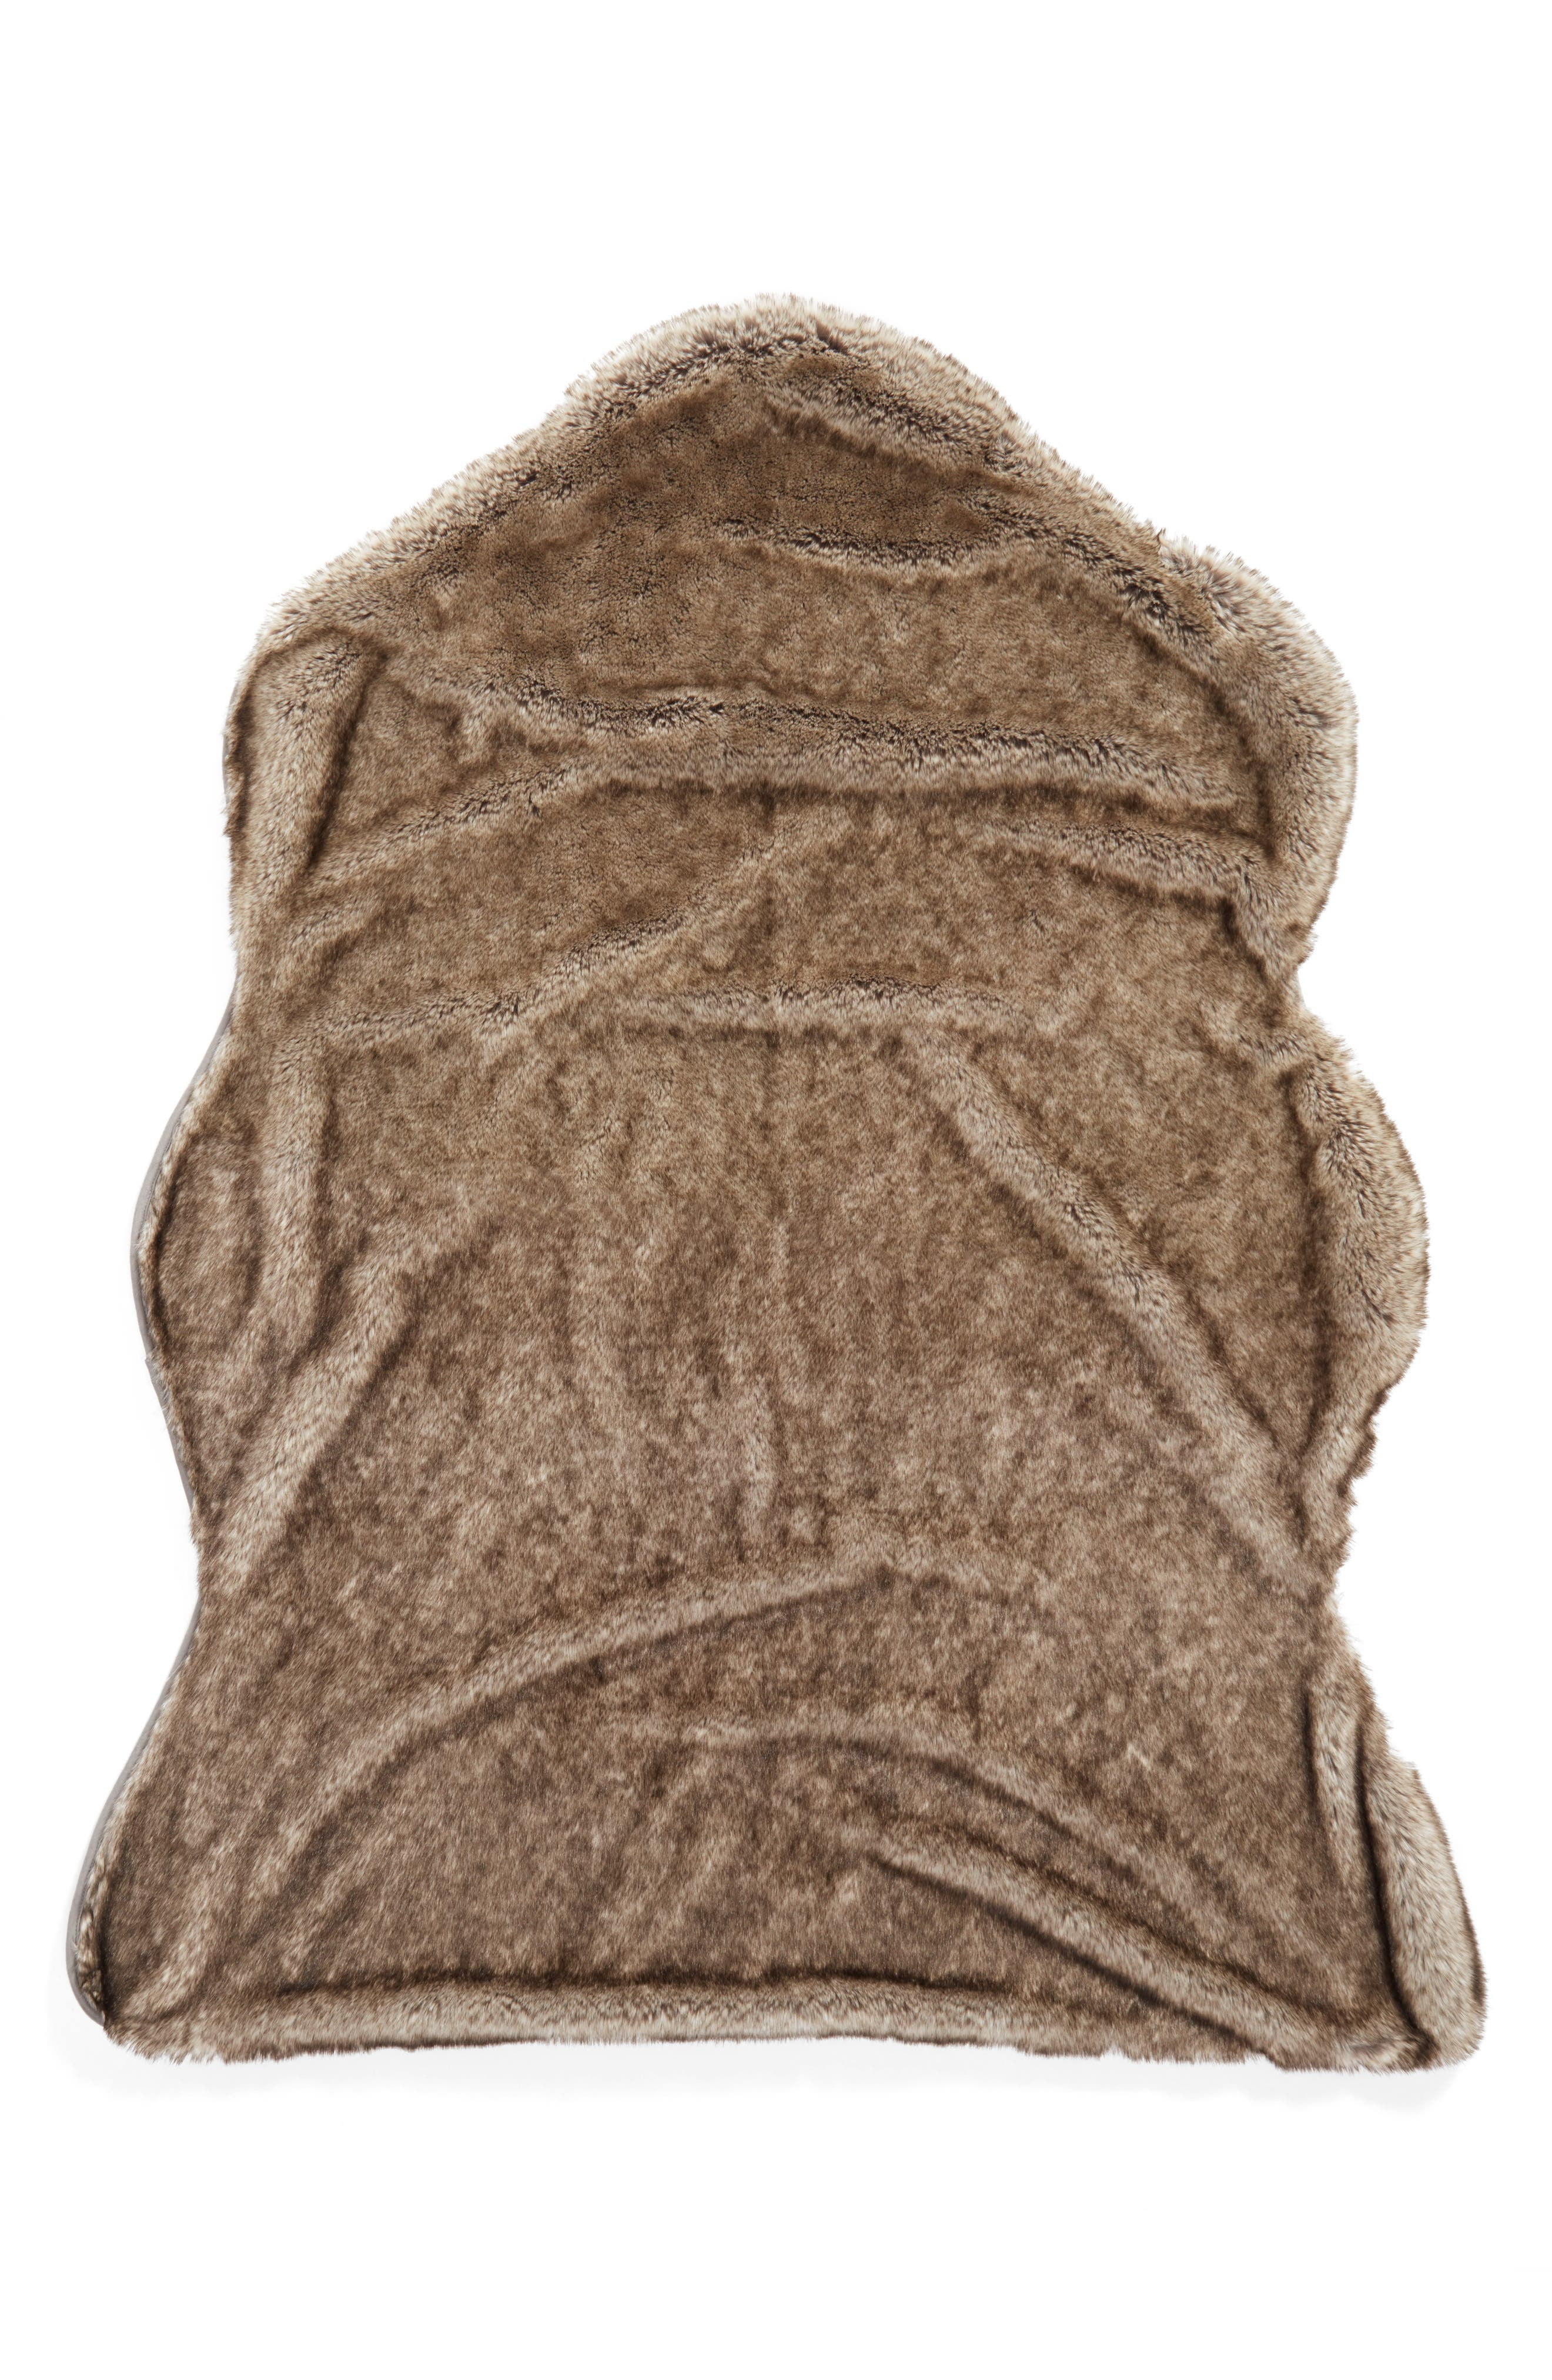 Alternate Image 1 Selected - Nordstrom at Home Cuddle Up Faux Fur Shaped Rug